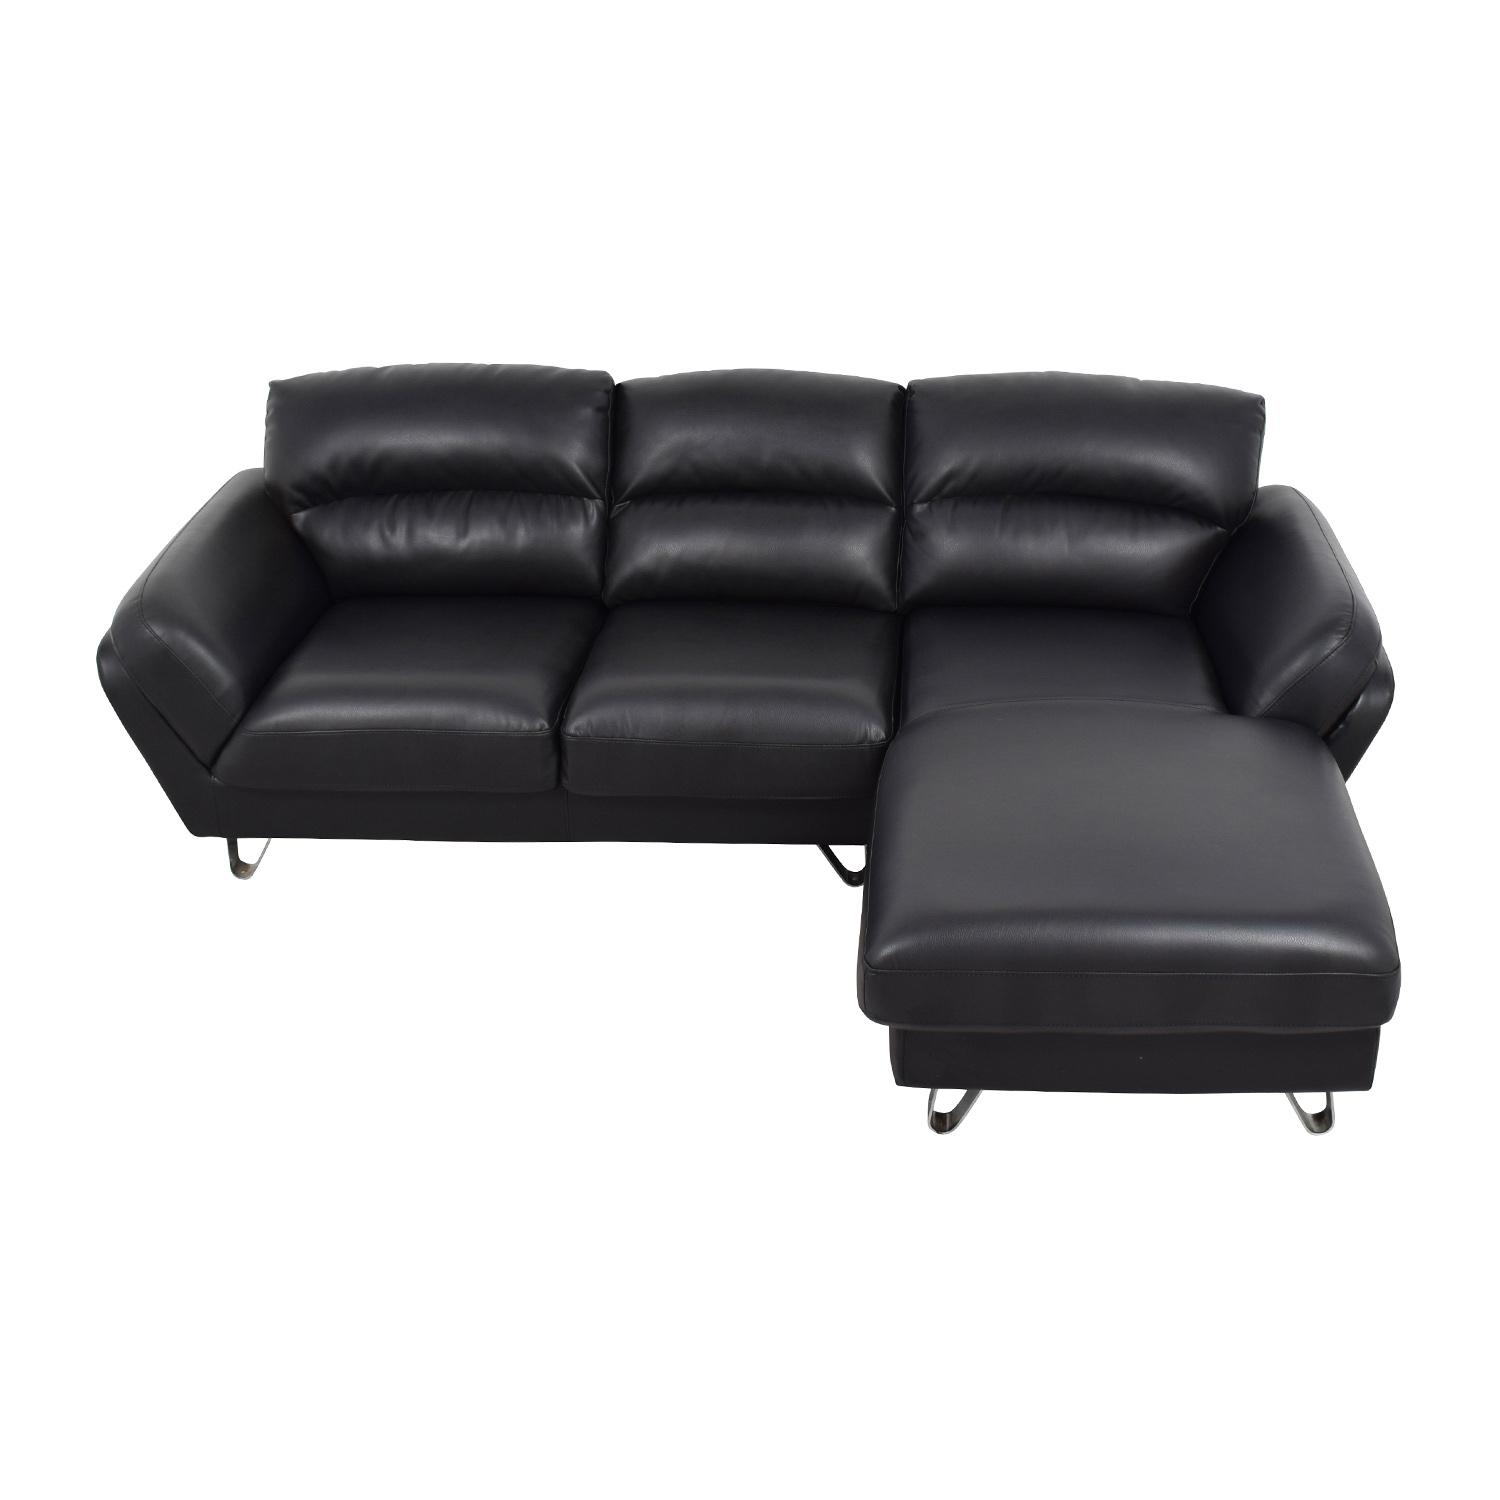 37% Off - Macy's Radley 3-Piece Fabric Chaise Sectional Sofa / Sofas with Used Sectionals